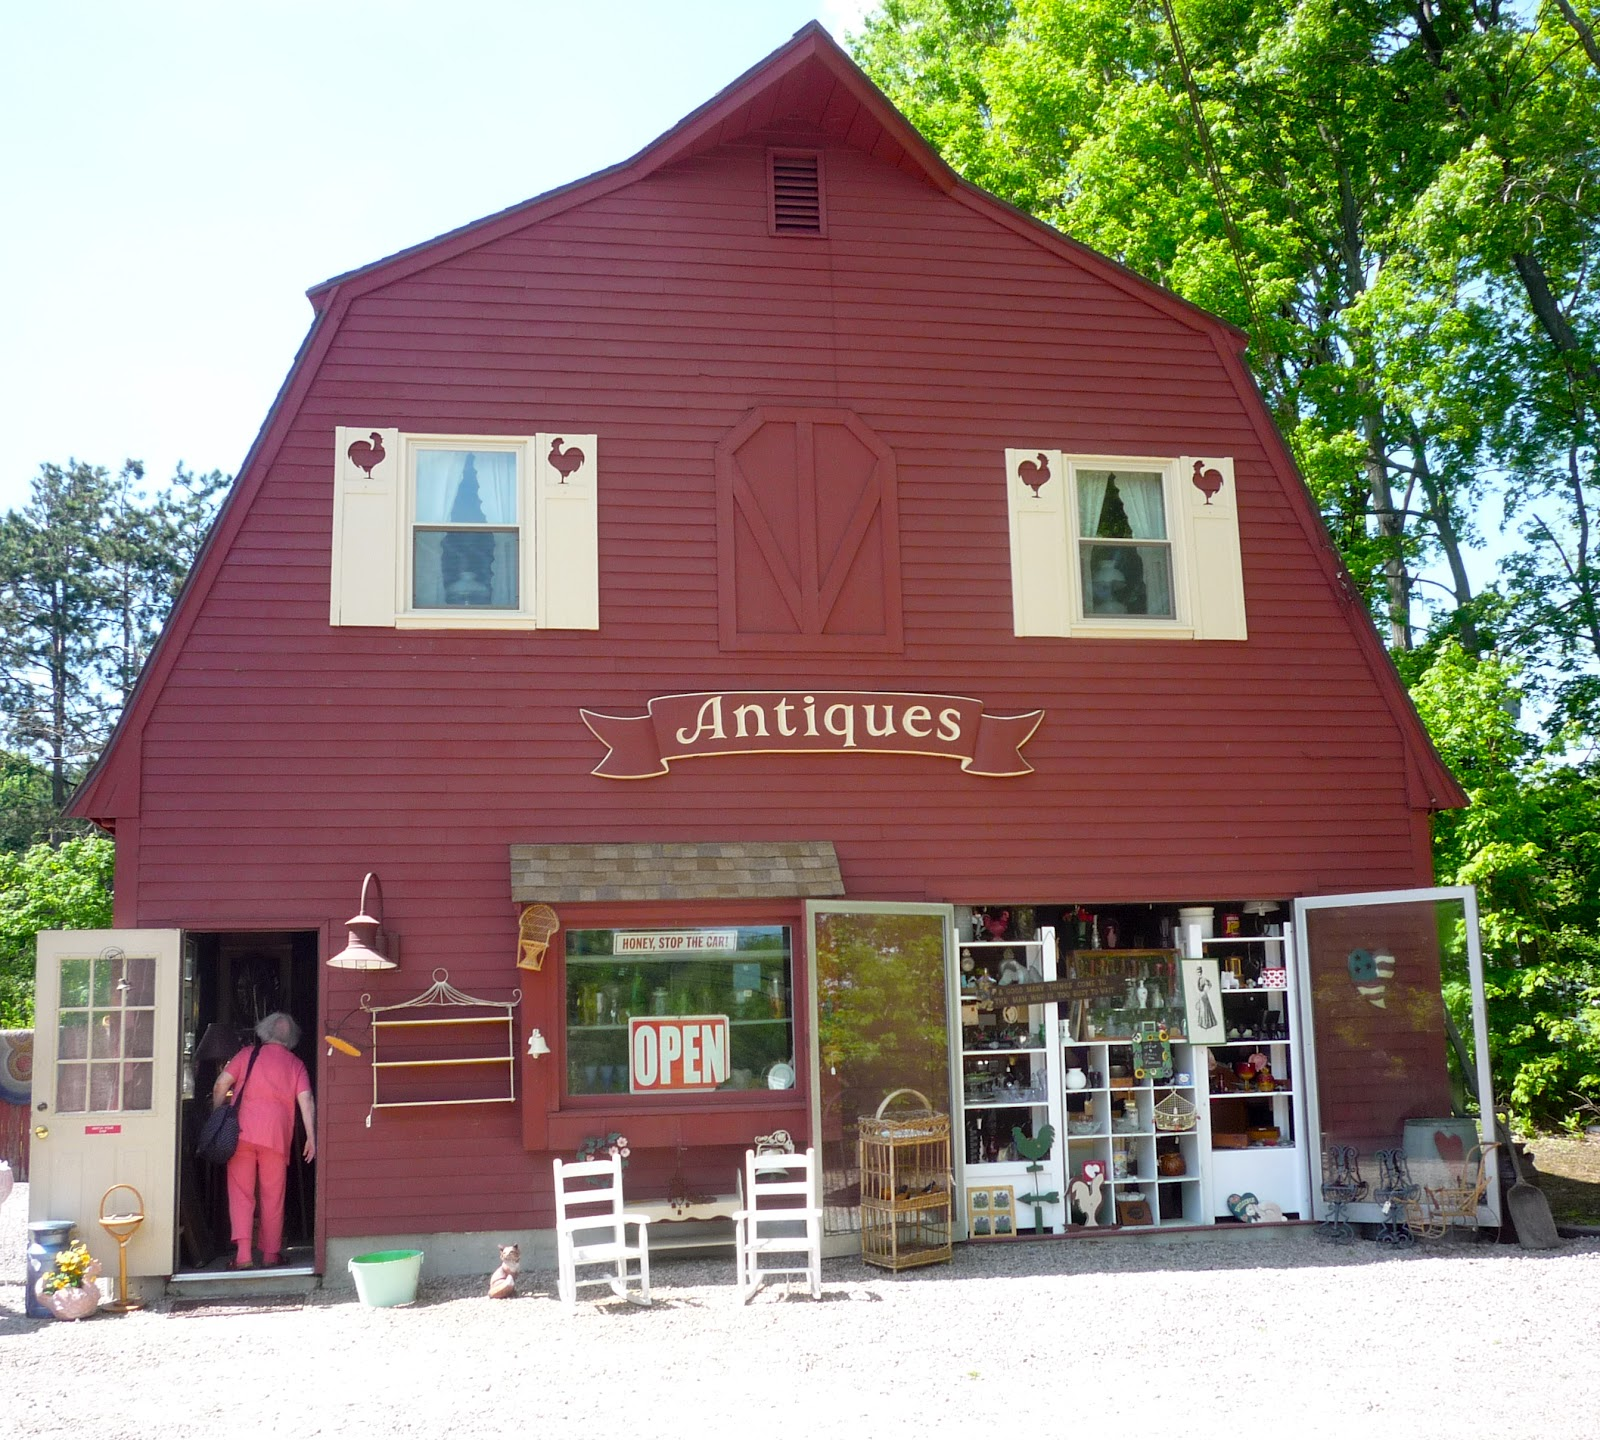 Visiting My Grandmother Had That Antiques In Wrentham Mass